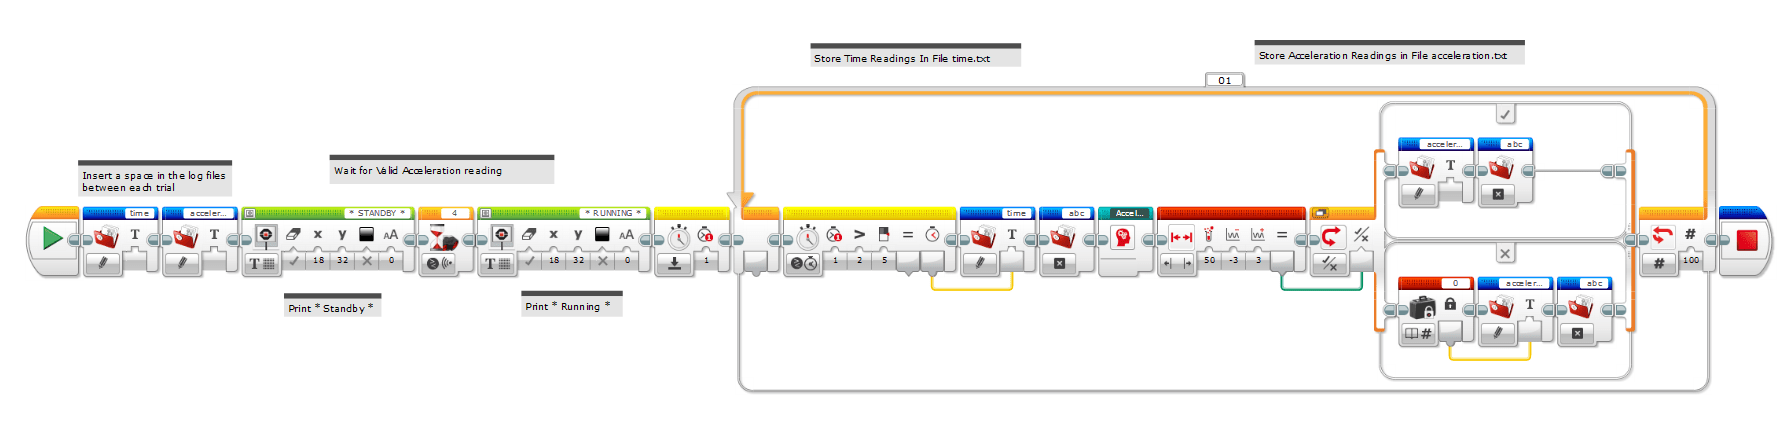 A screen capture image shows the EV3 MINDSTORMS program used to program the mouse trap racer - a sequence of icons.